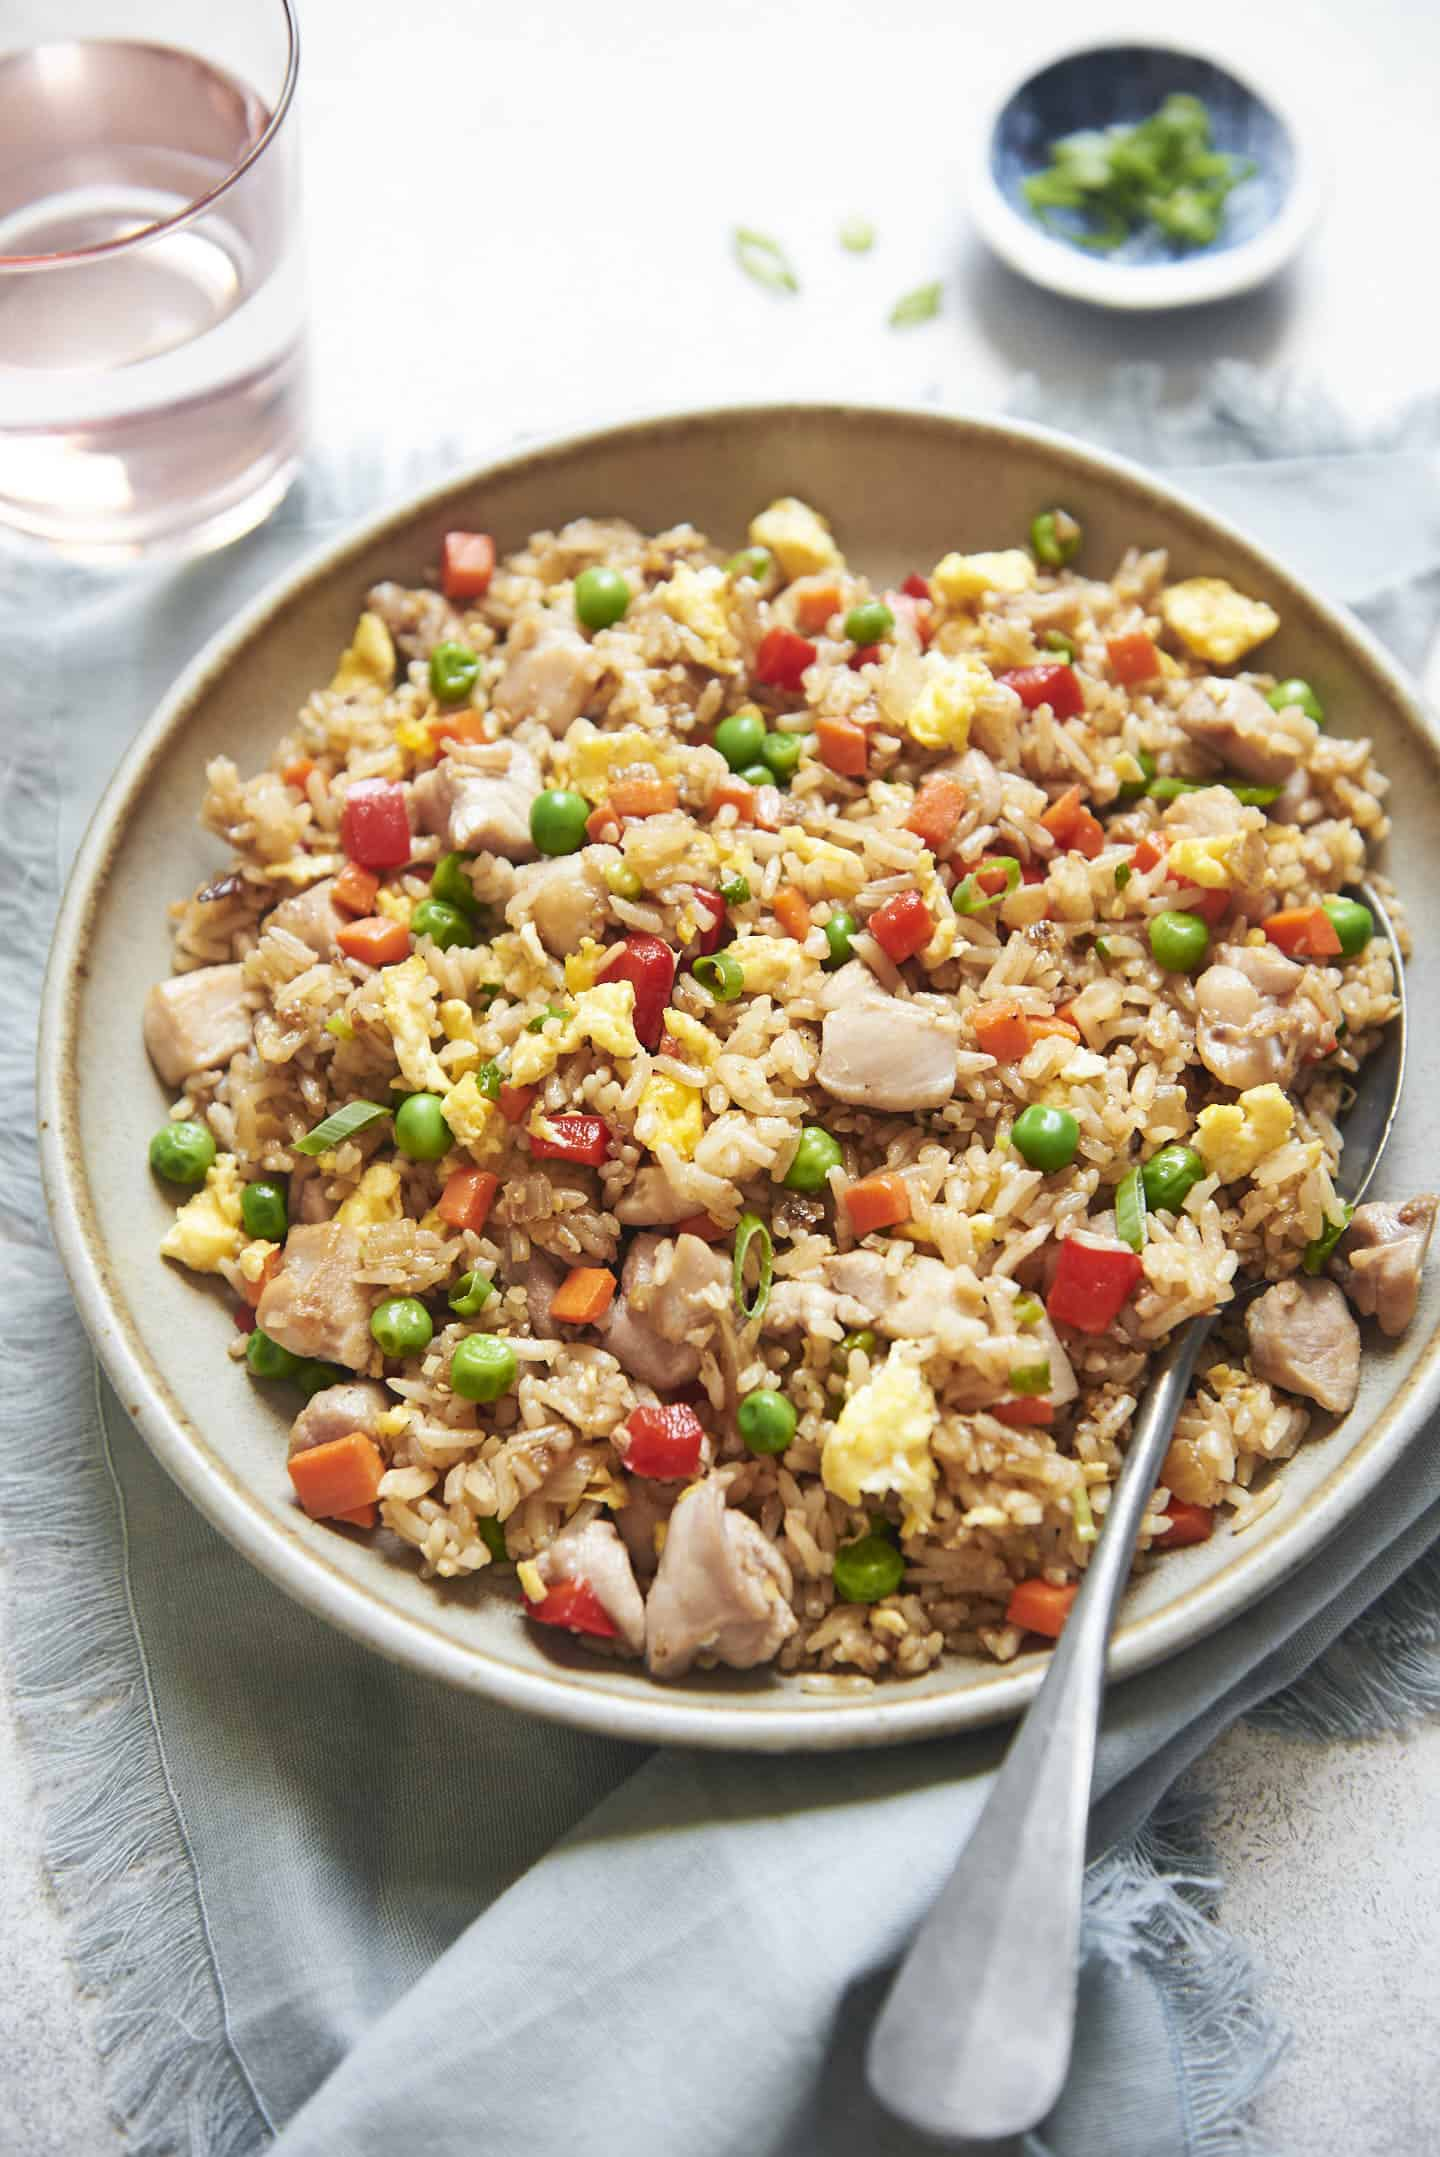 How many calories in one cup of chicken fried rice